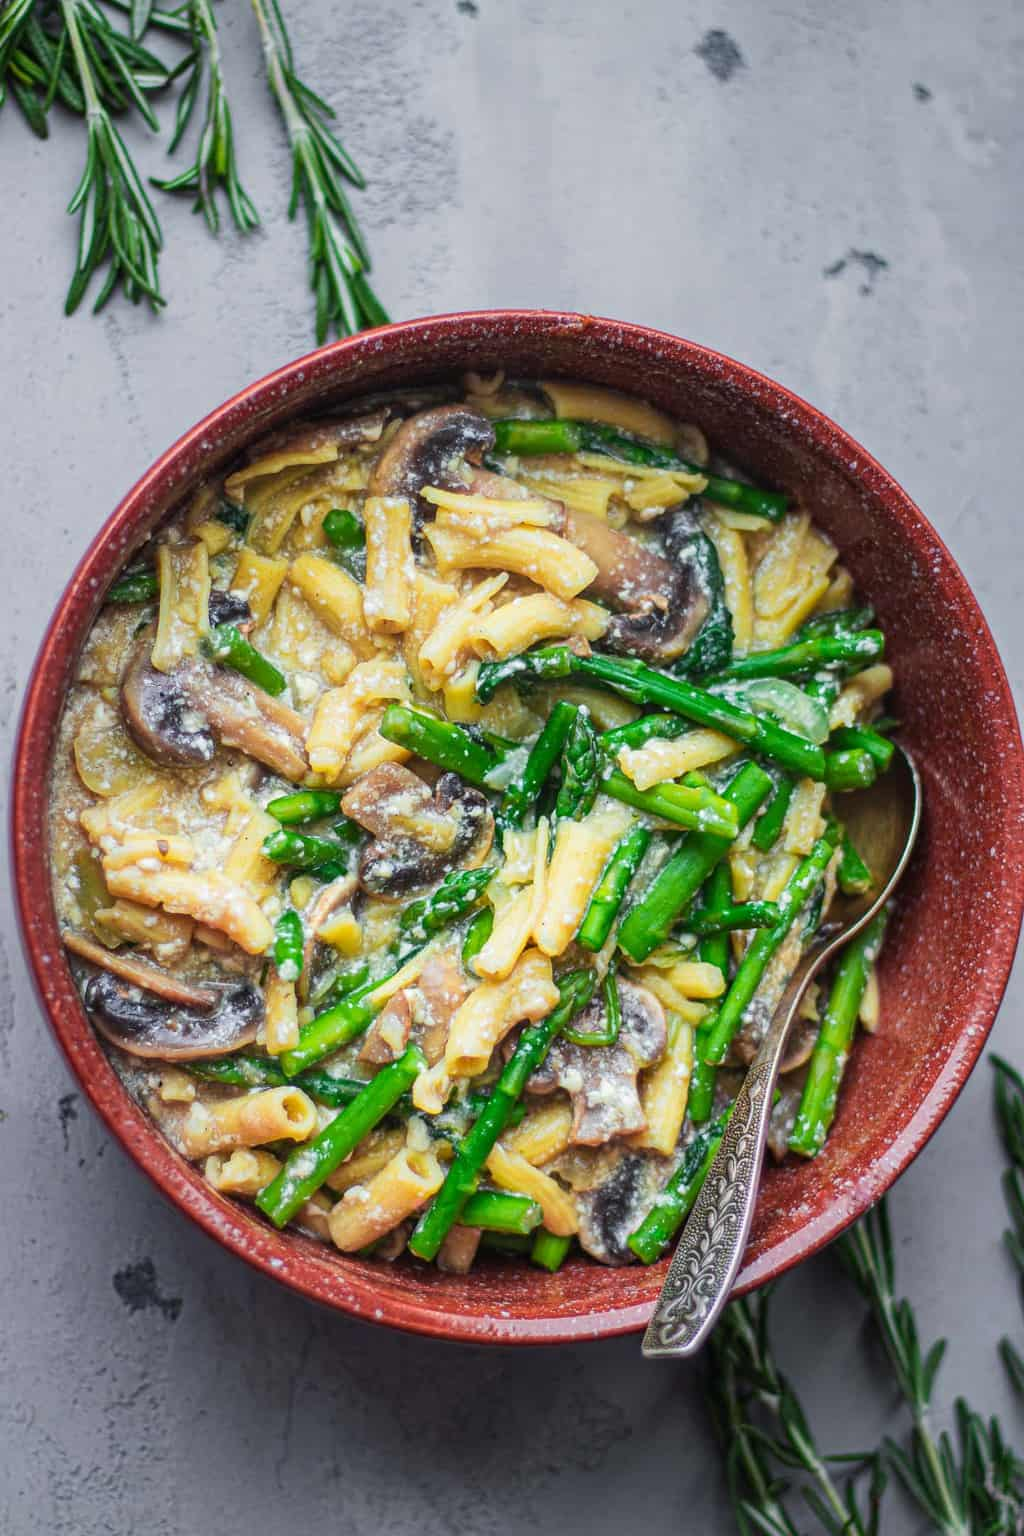 Bowl of pasta with asparagus and mushrooms